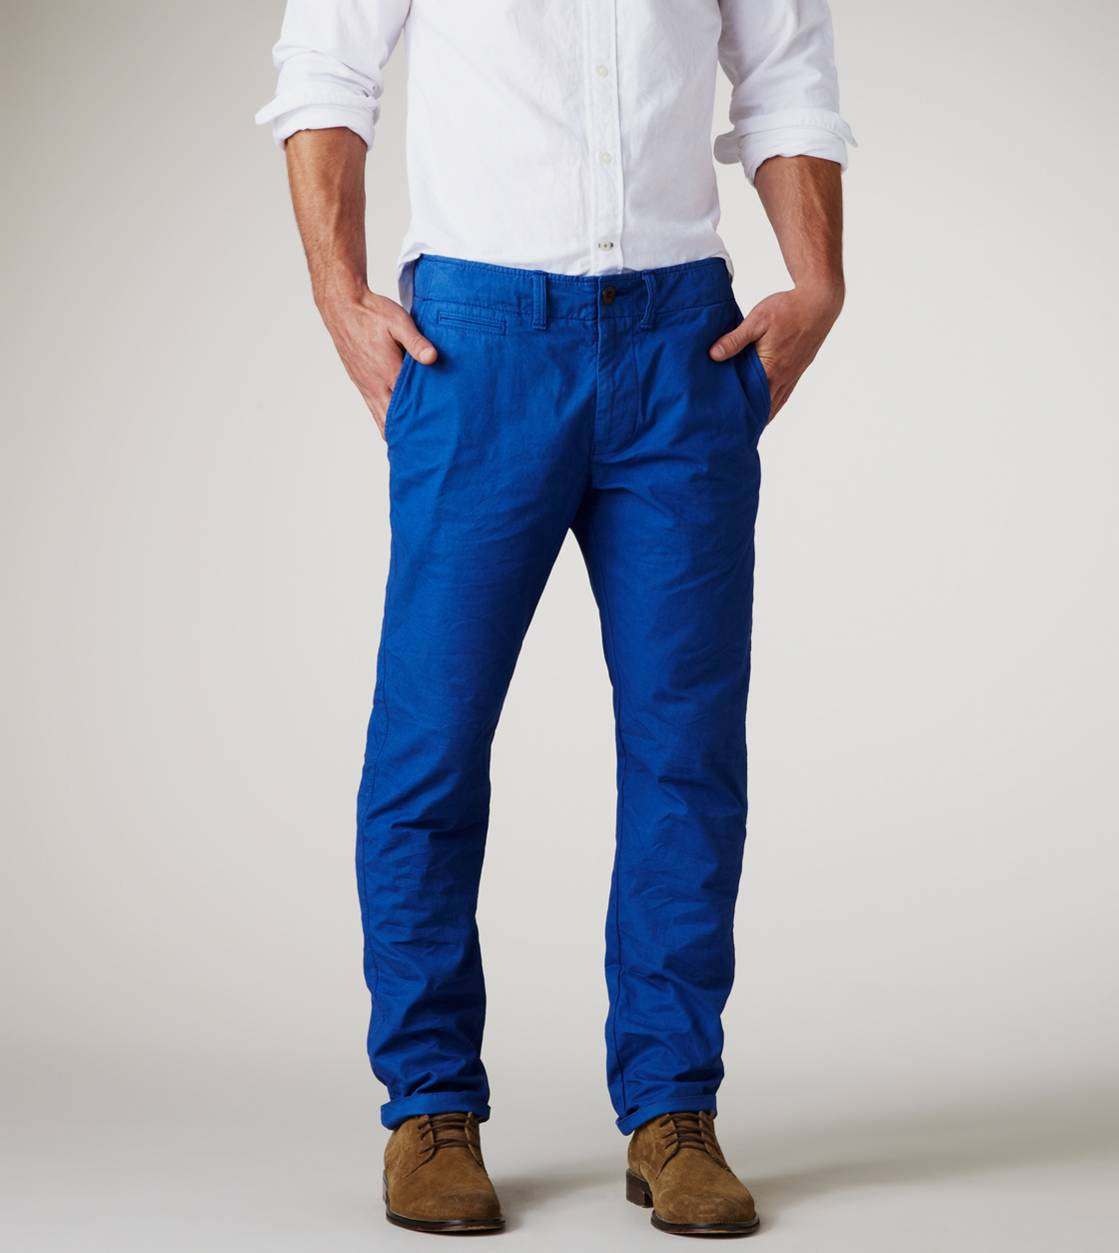 Blue Pants For Men